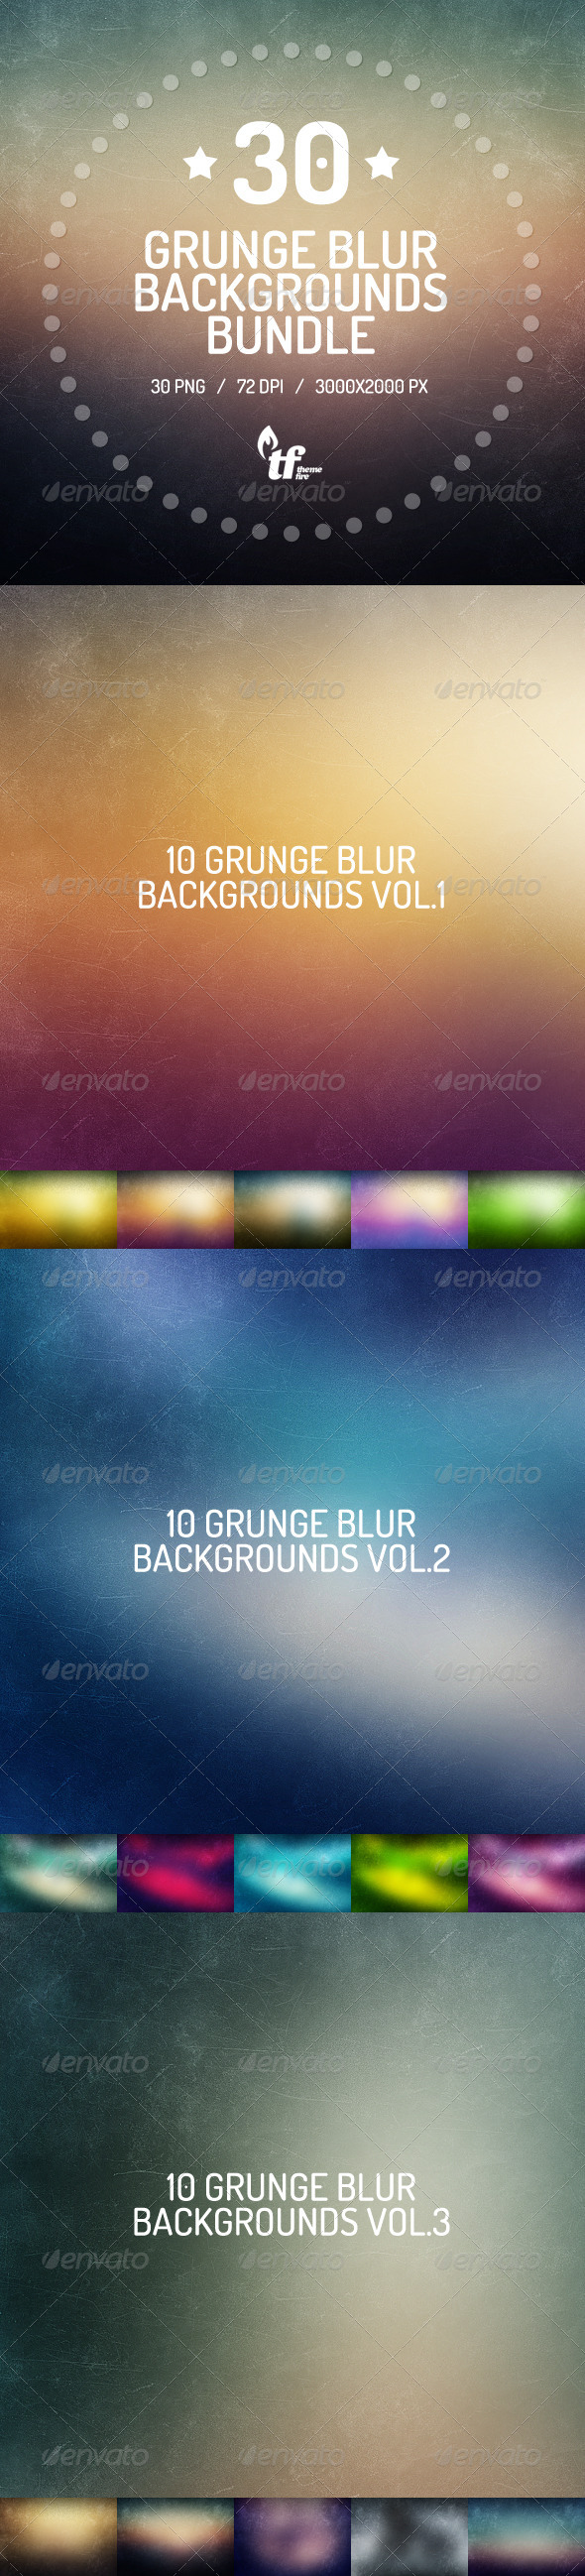 30 Grunge Blurred Backgrounds Bundle - Backgrounds Graphics